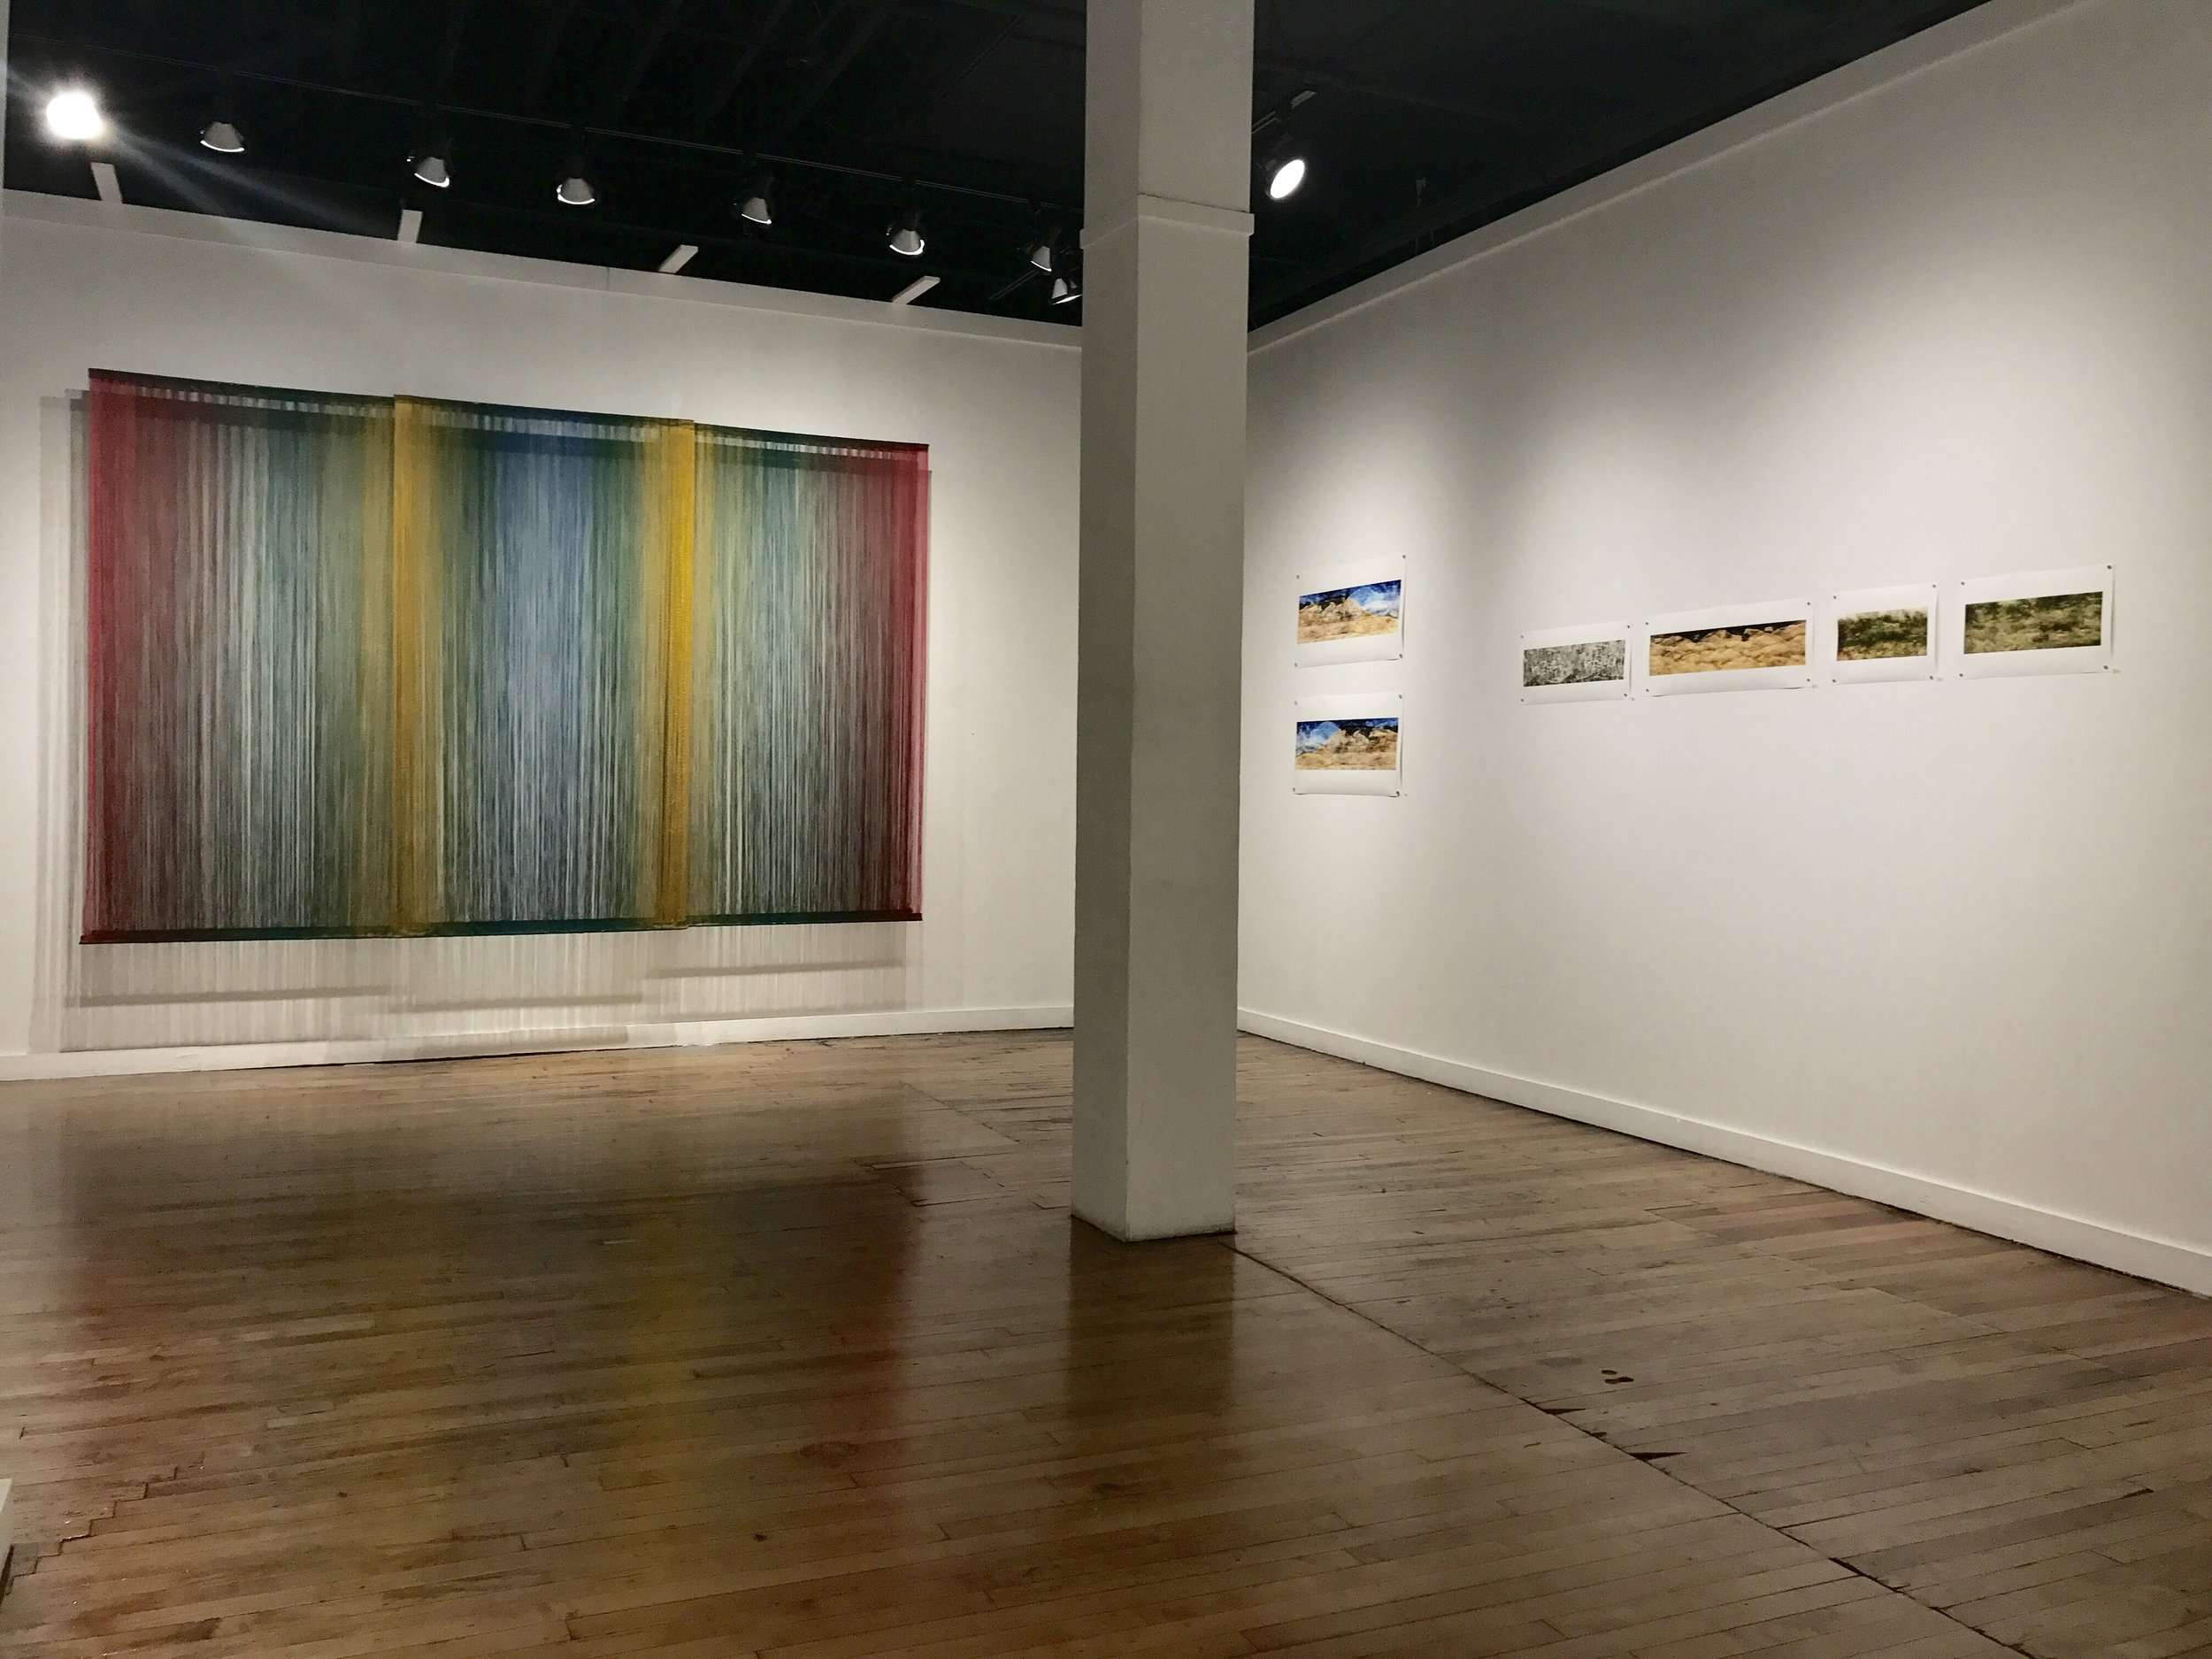 SANCTUARIES; A Print and Sound Installation by Kristine Barrett with Woven Textiles by Debbie Barrett-Jones   Leedy-Voulkos Art Center   Kansas City, MO